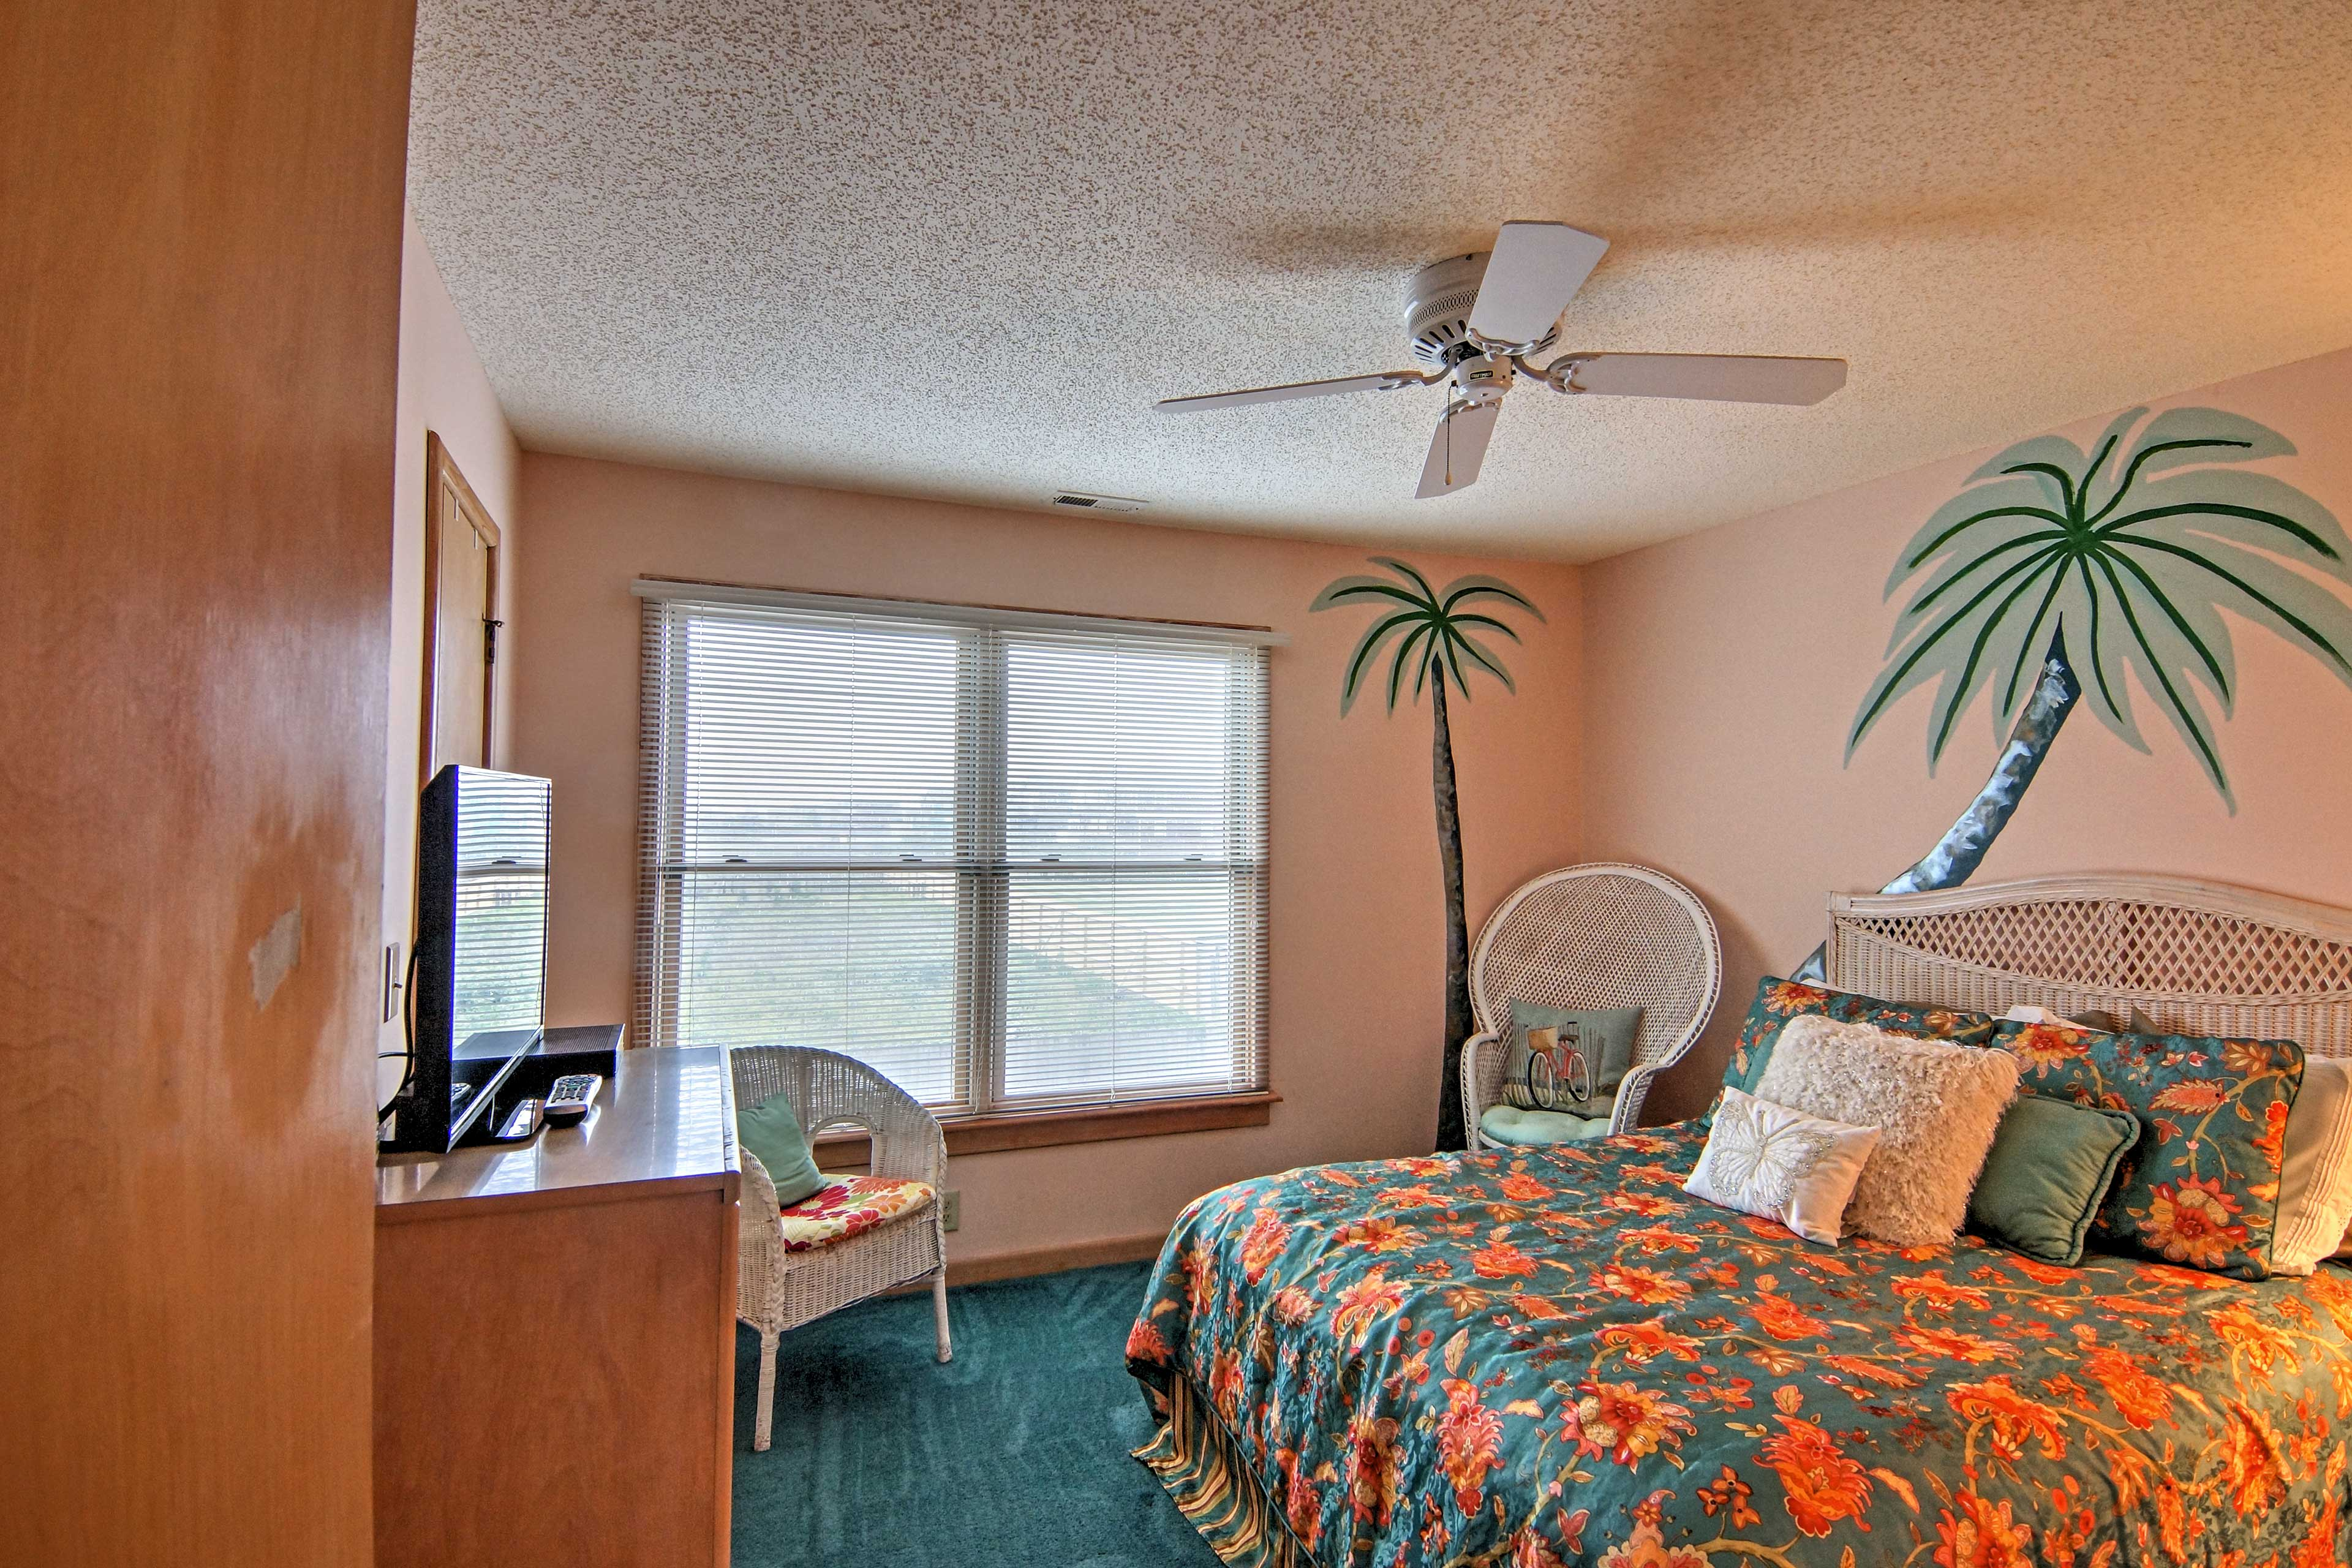 The 'Palm Room' features a comfortable queen-sized bed and flat-screen TV.